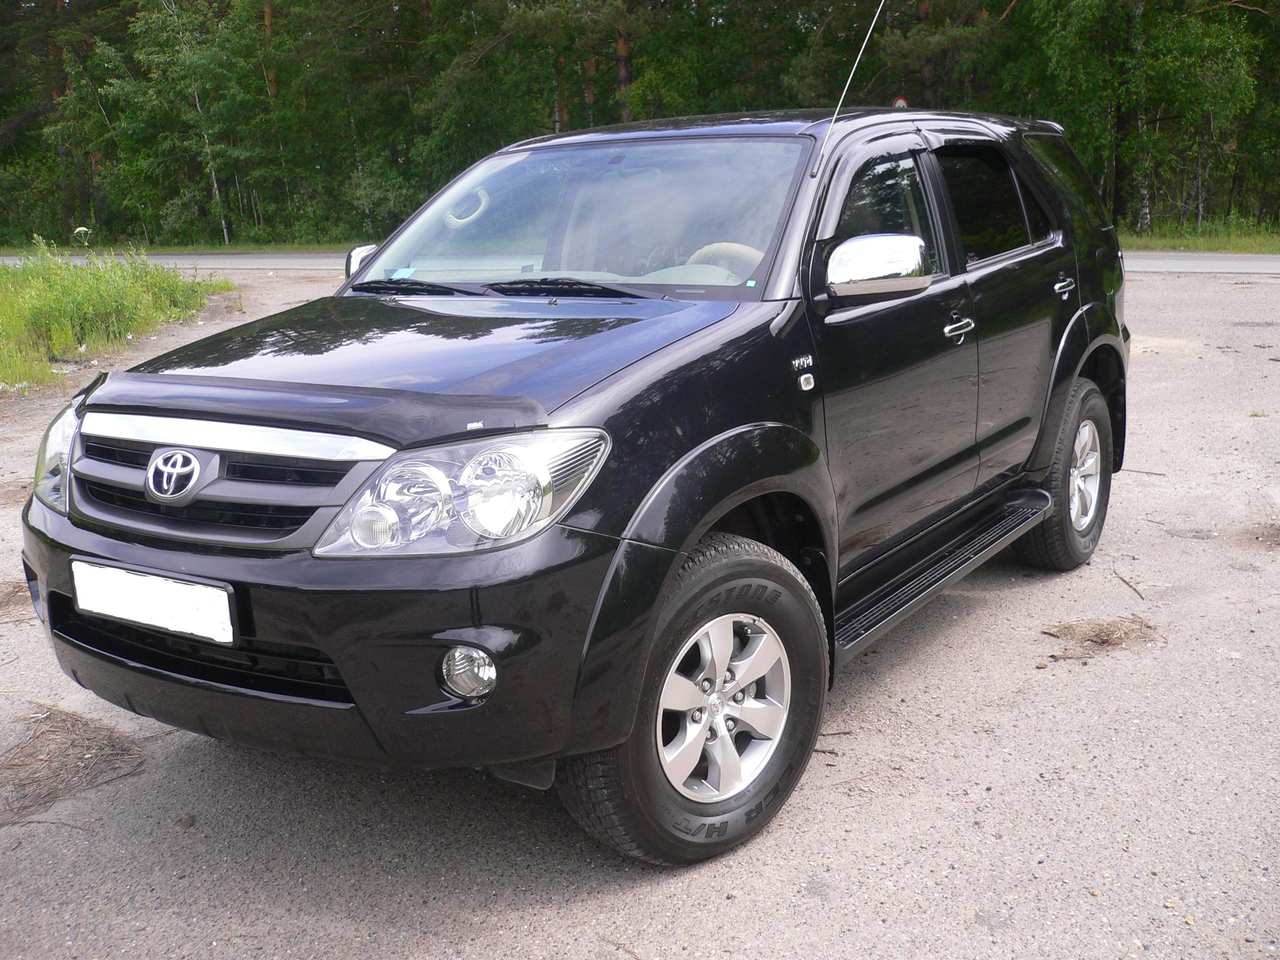 2008 Toyota Fortuner Photos, 2 7, Gasoline, Automatic For Sale